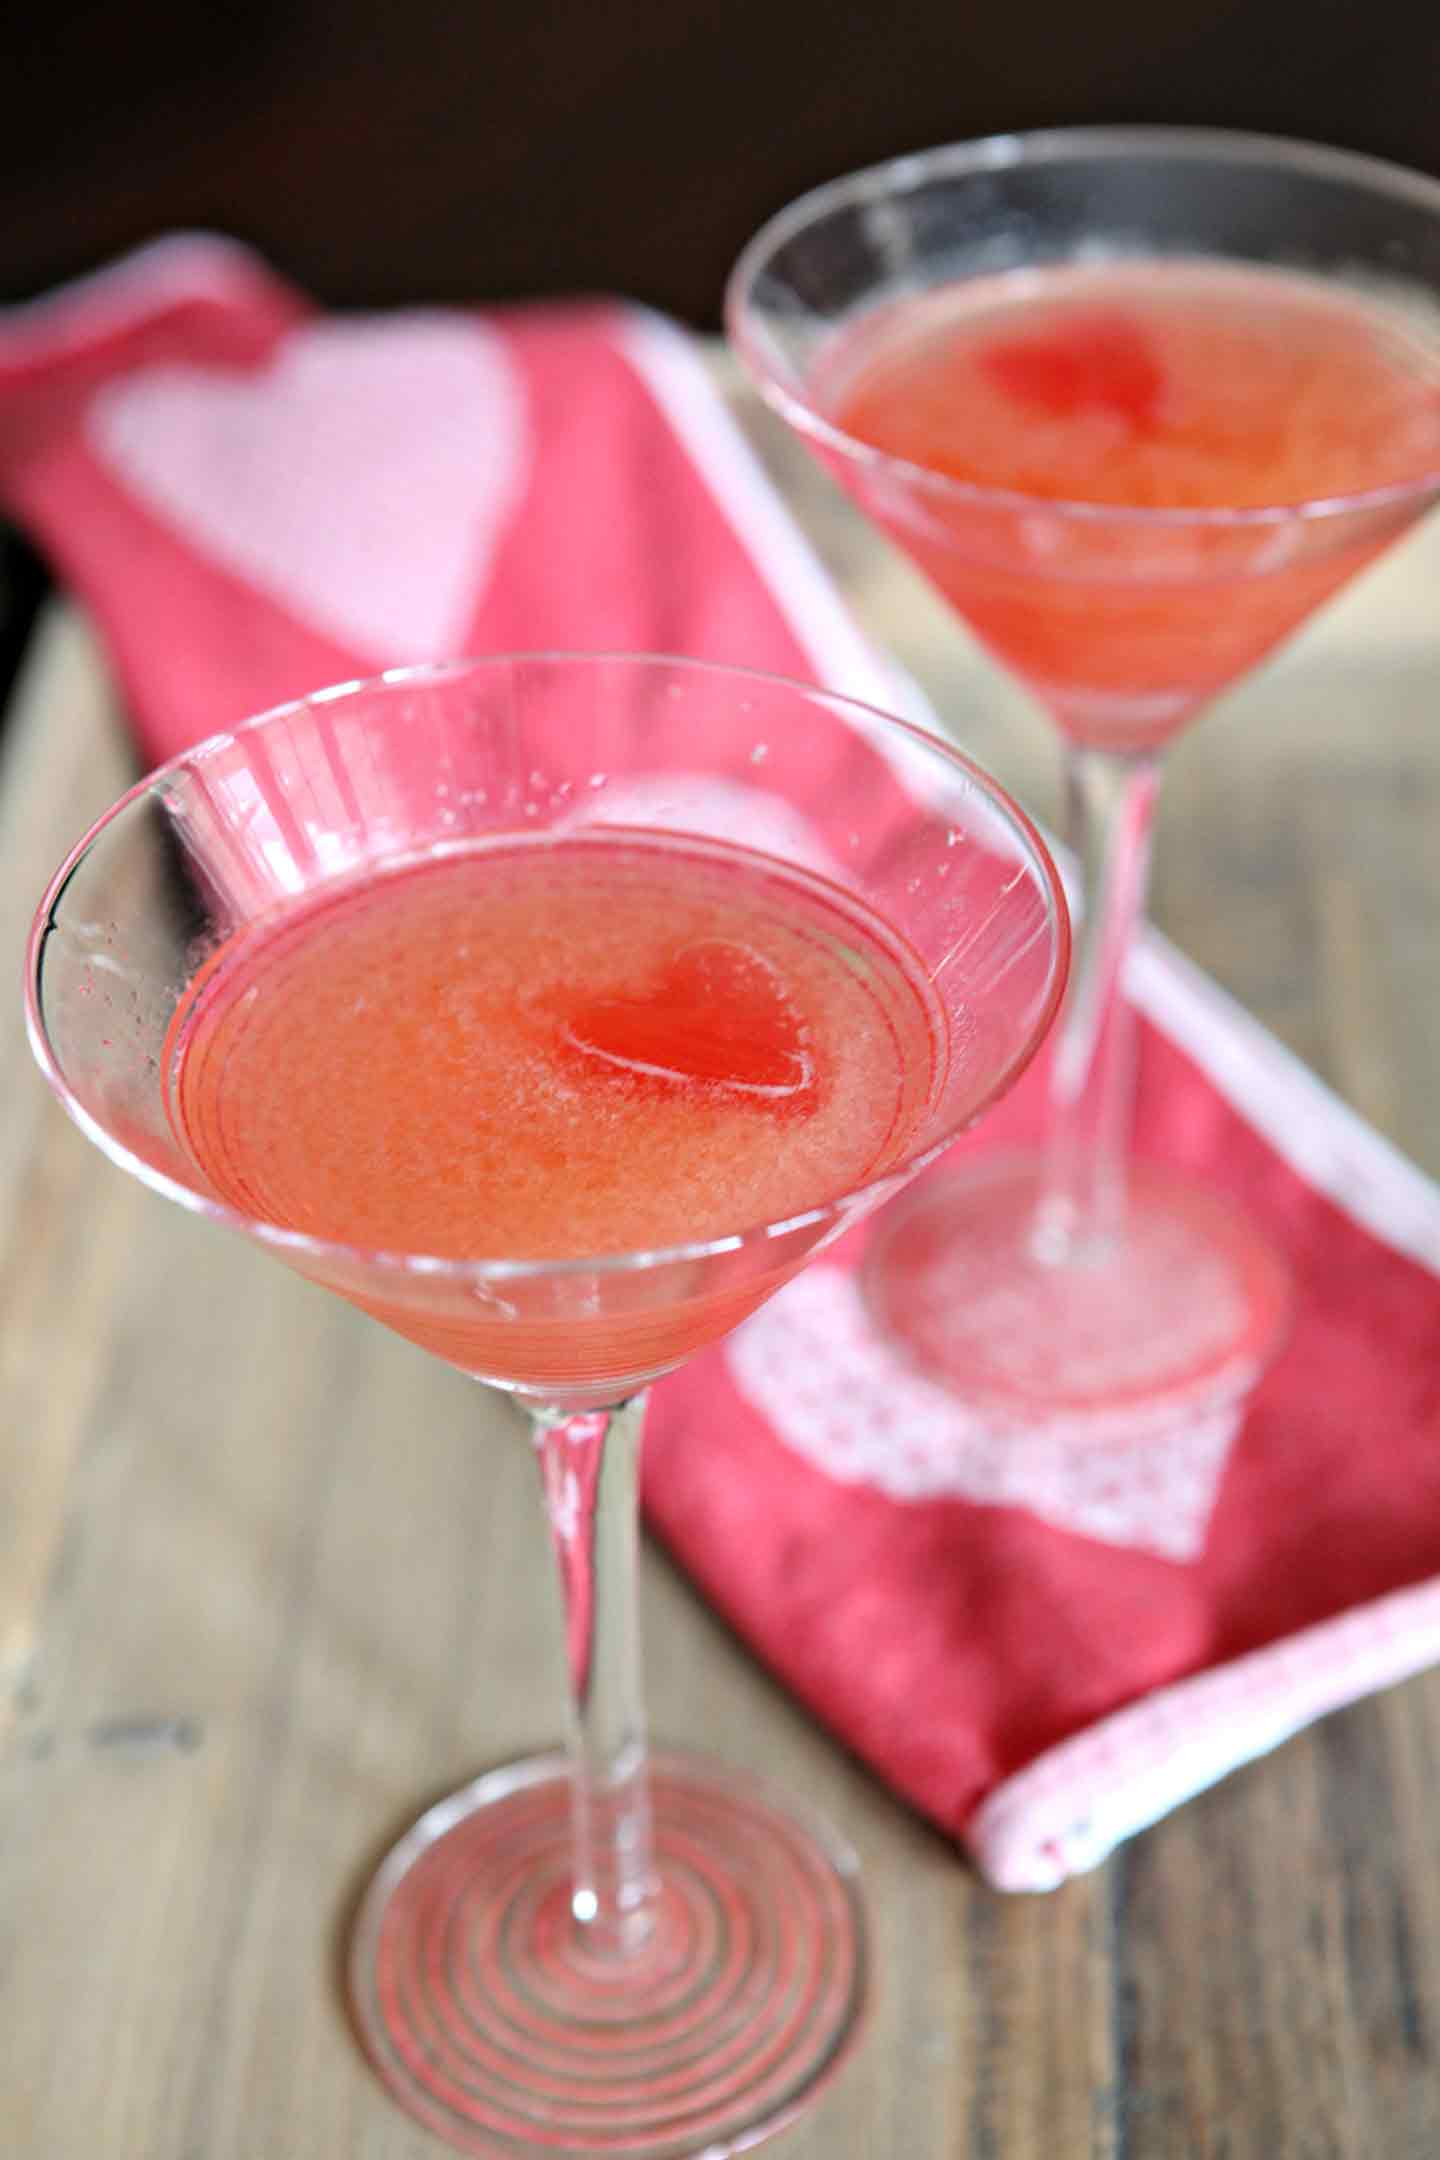 A classic cocktail, the Cosmopolitan, makes a delicious beverage for any holiday get together, especially Galentine's, Valentine's Day, or a girls' night out. Similar in flavor to a Sea Breeze, this liqueur drink combines bitter and sweet beautifully. Made with vodka, Cointreau, cranberry juice and lime juice, this strong drink sips easy for any celebration or get-together.